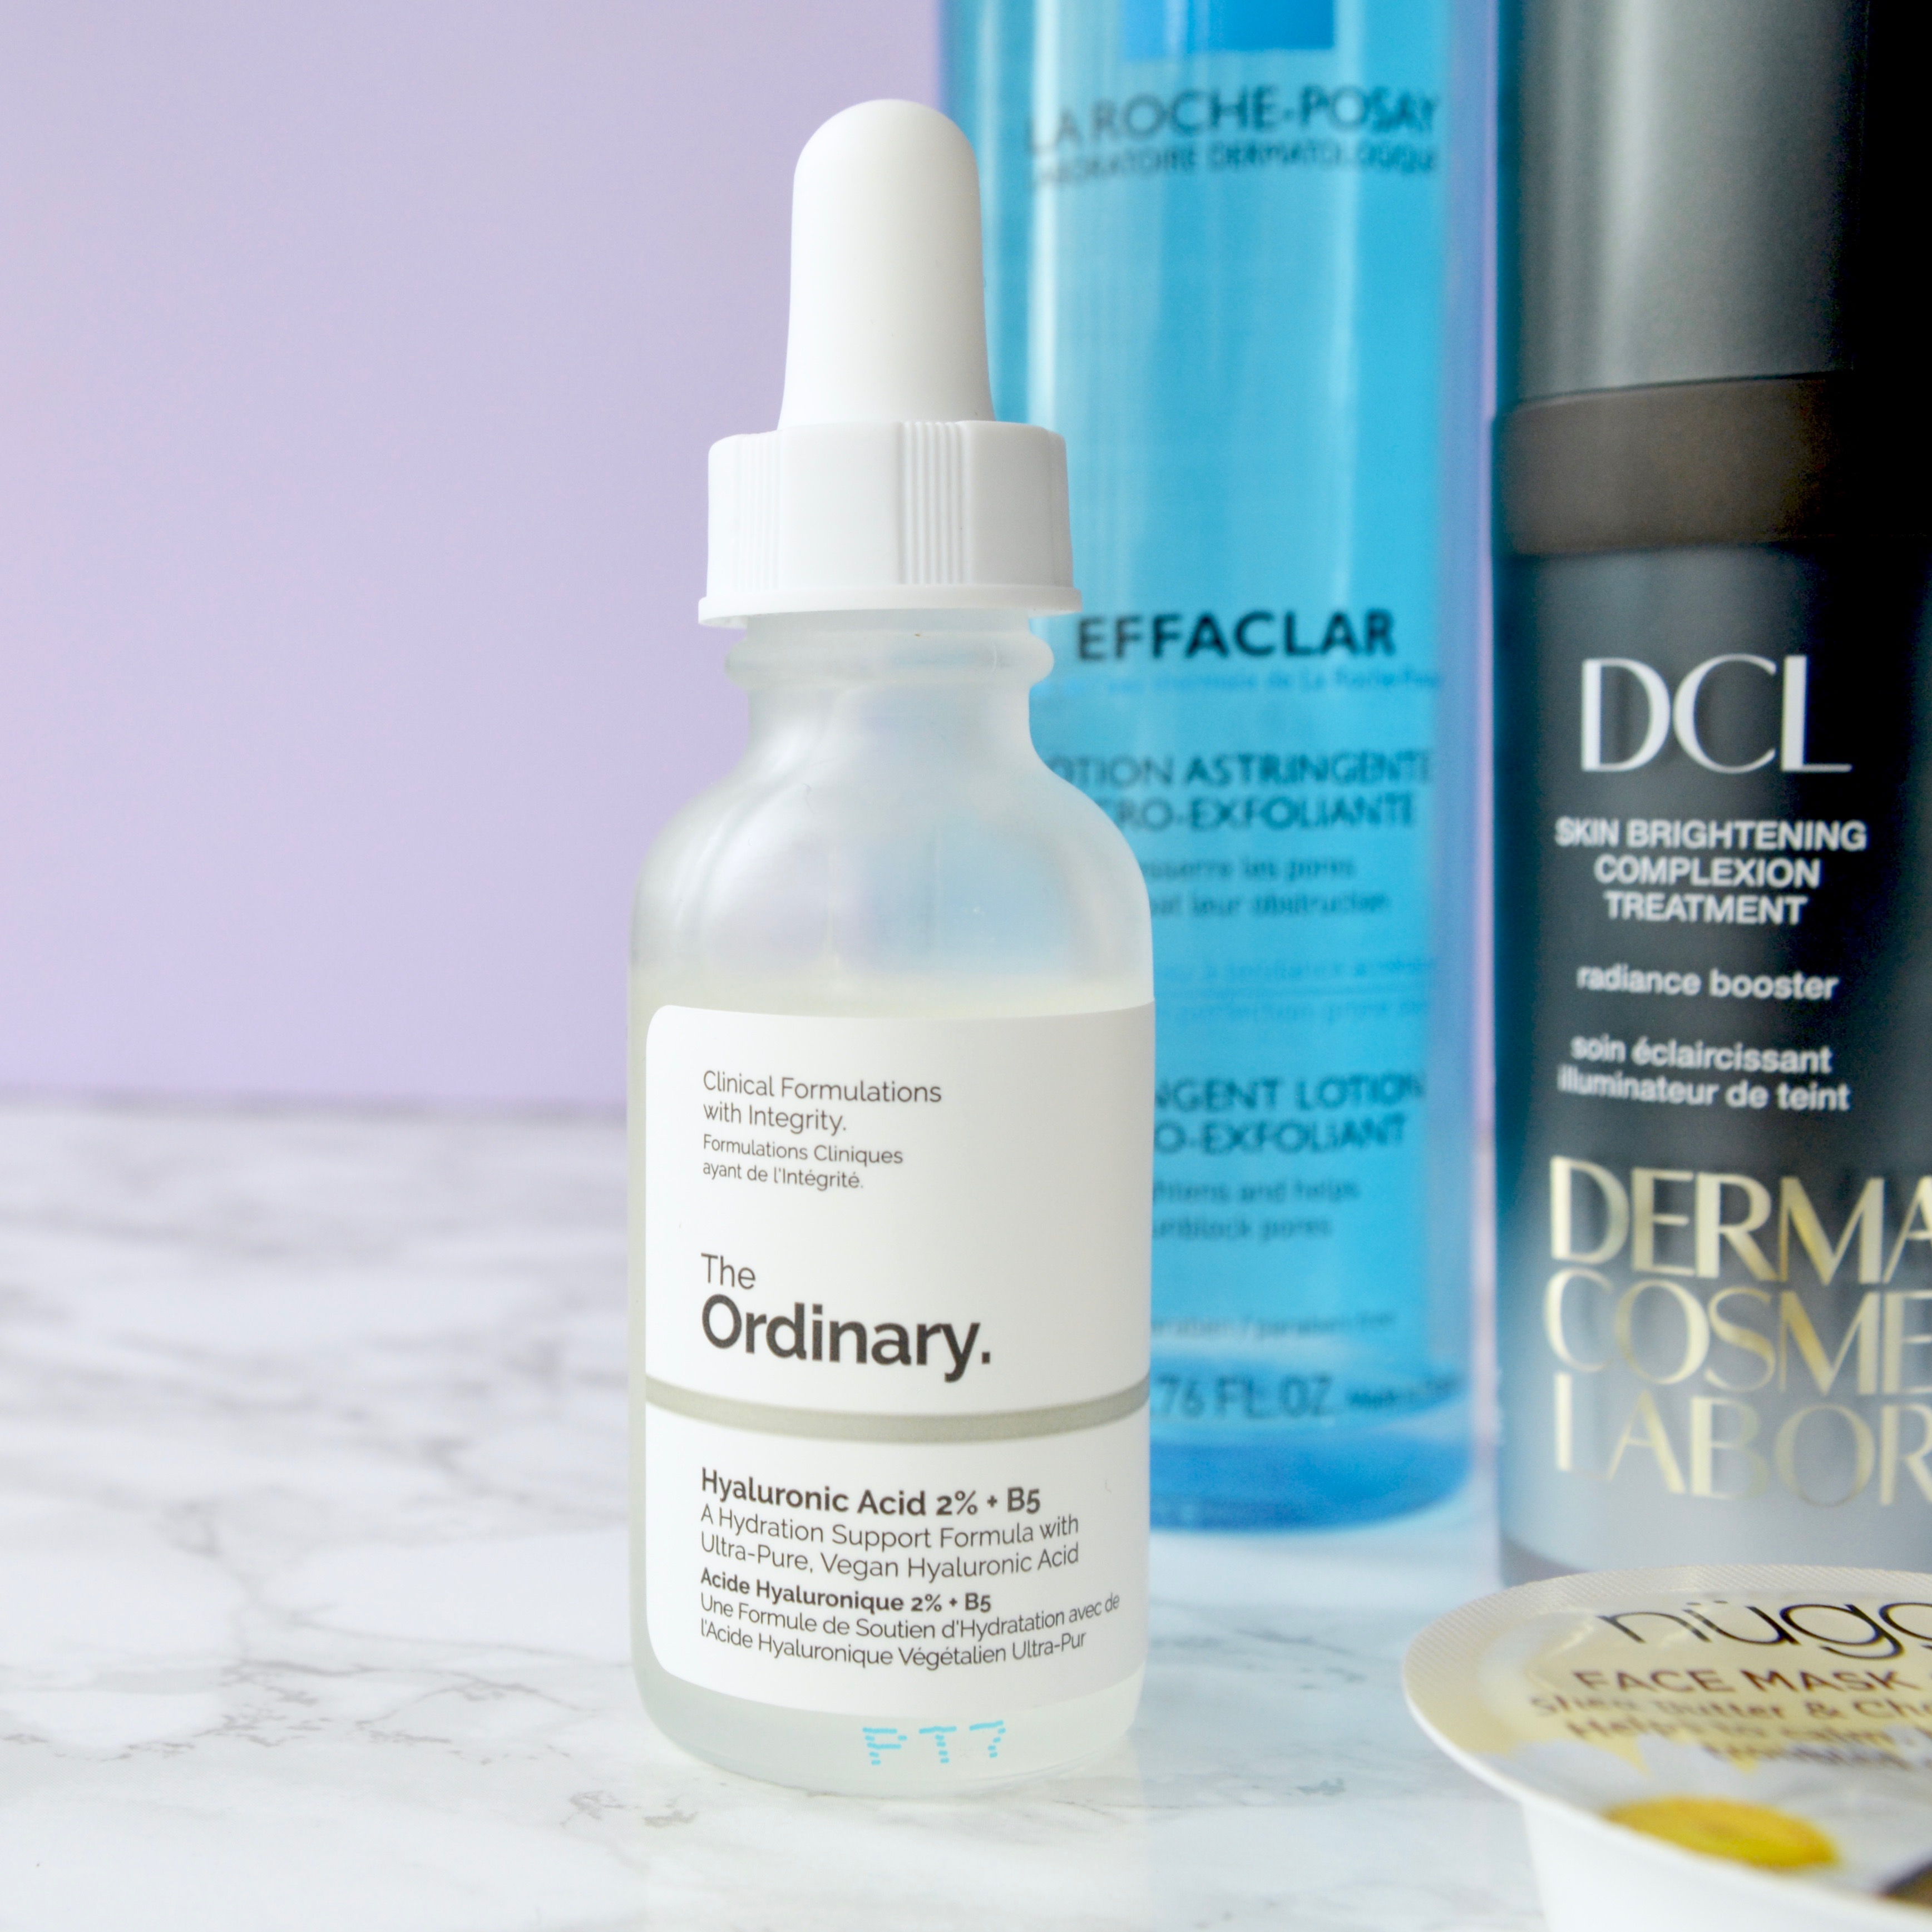 Skincare Shake Up: The Ordinary Hyaluronic Acid serum. Great recommendations for rosacea/sensitive skin